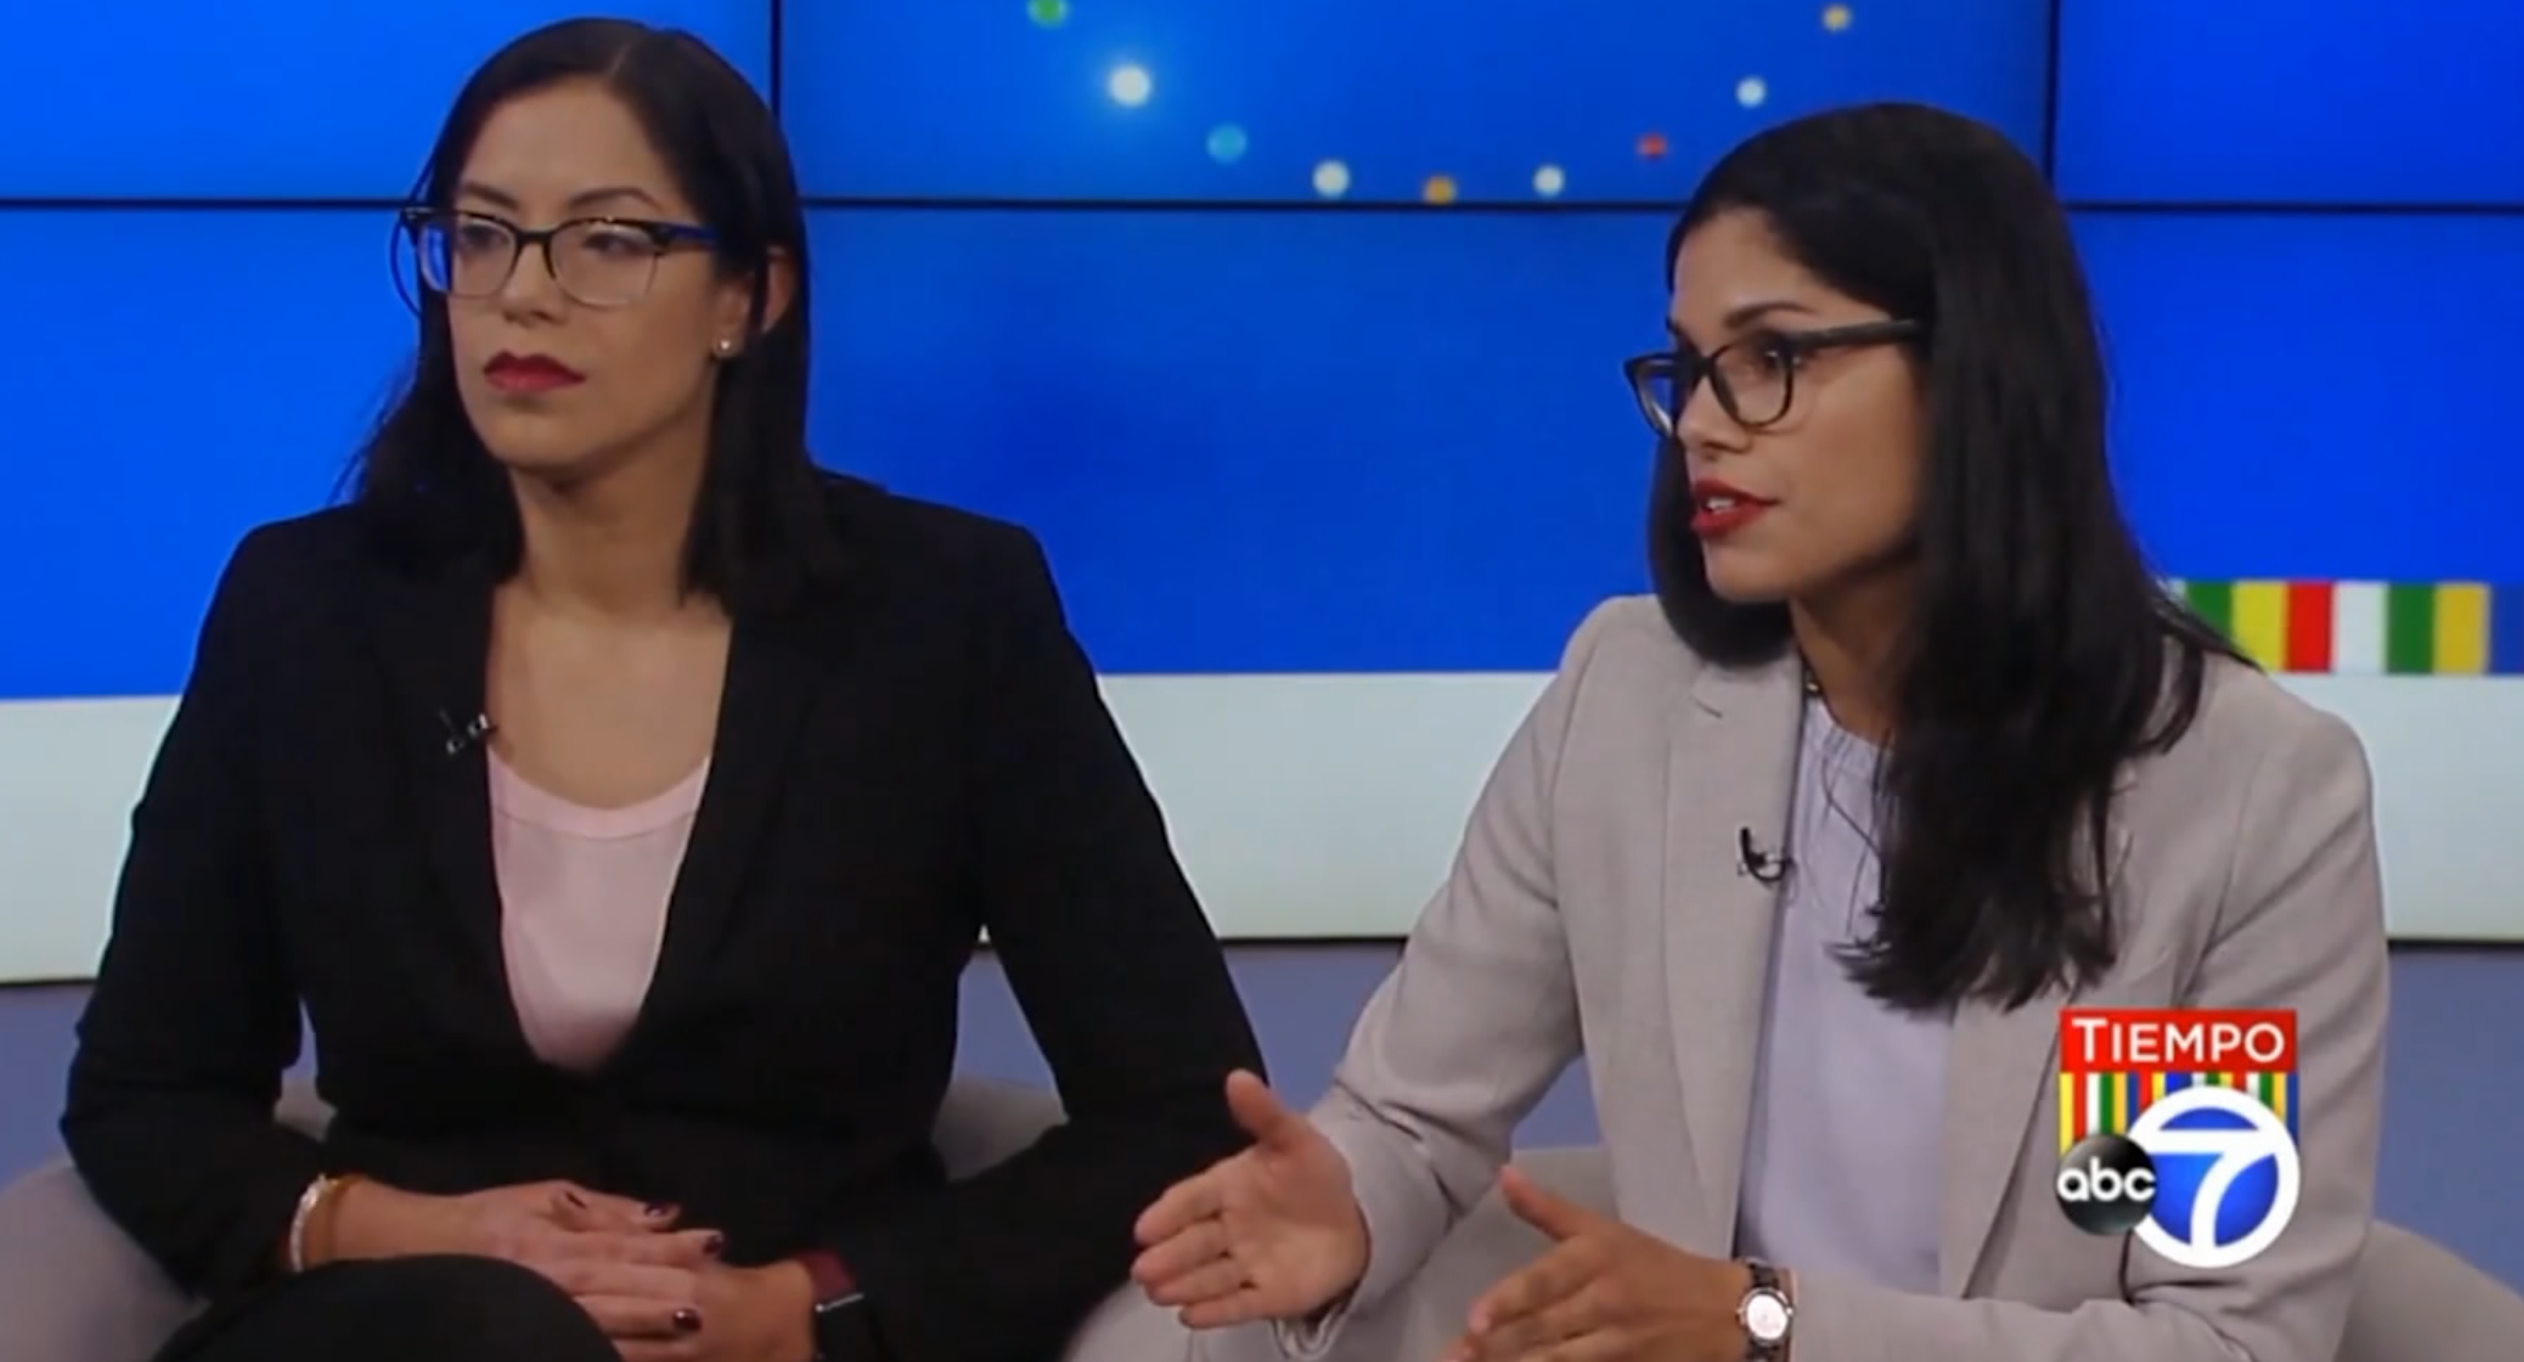 ABC's Tiempo Addresses Wage Theft in the Restaurant Industry